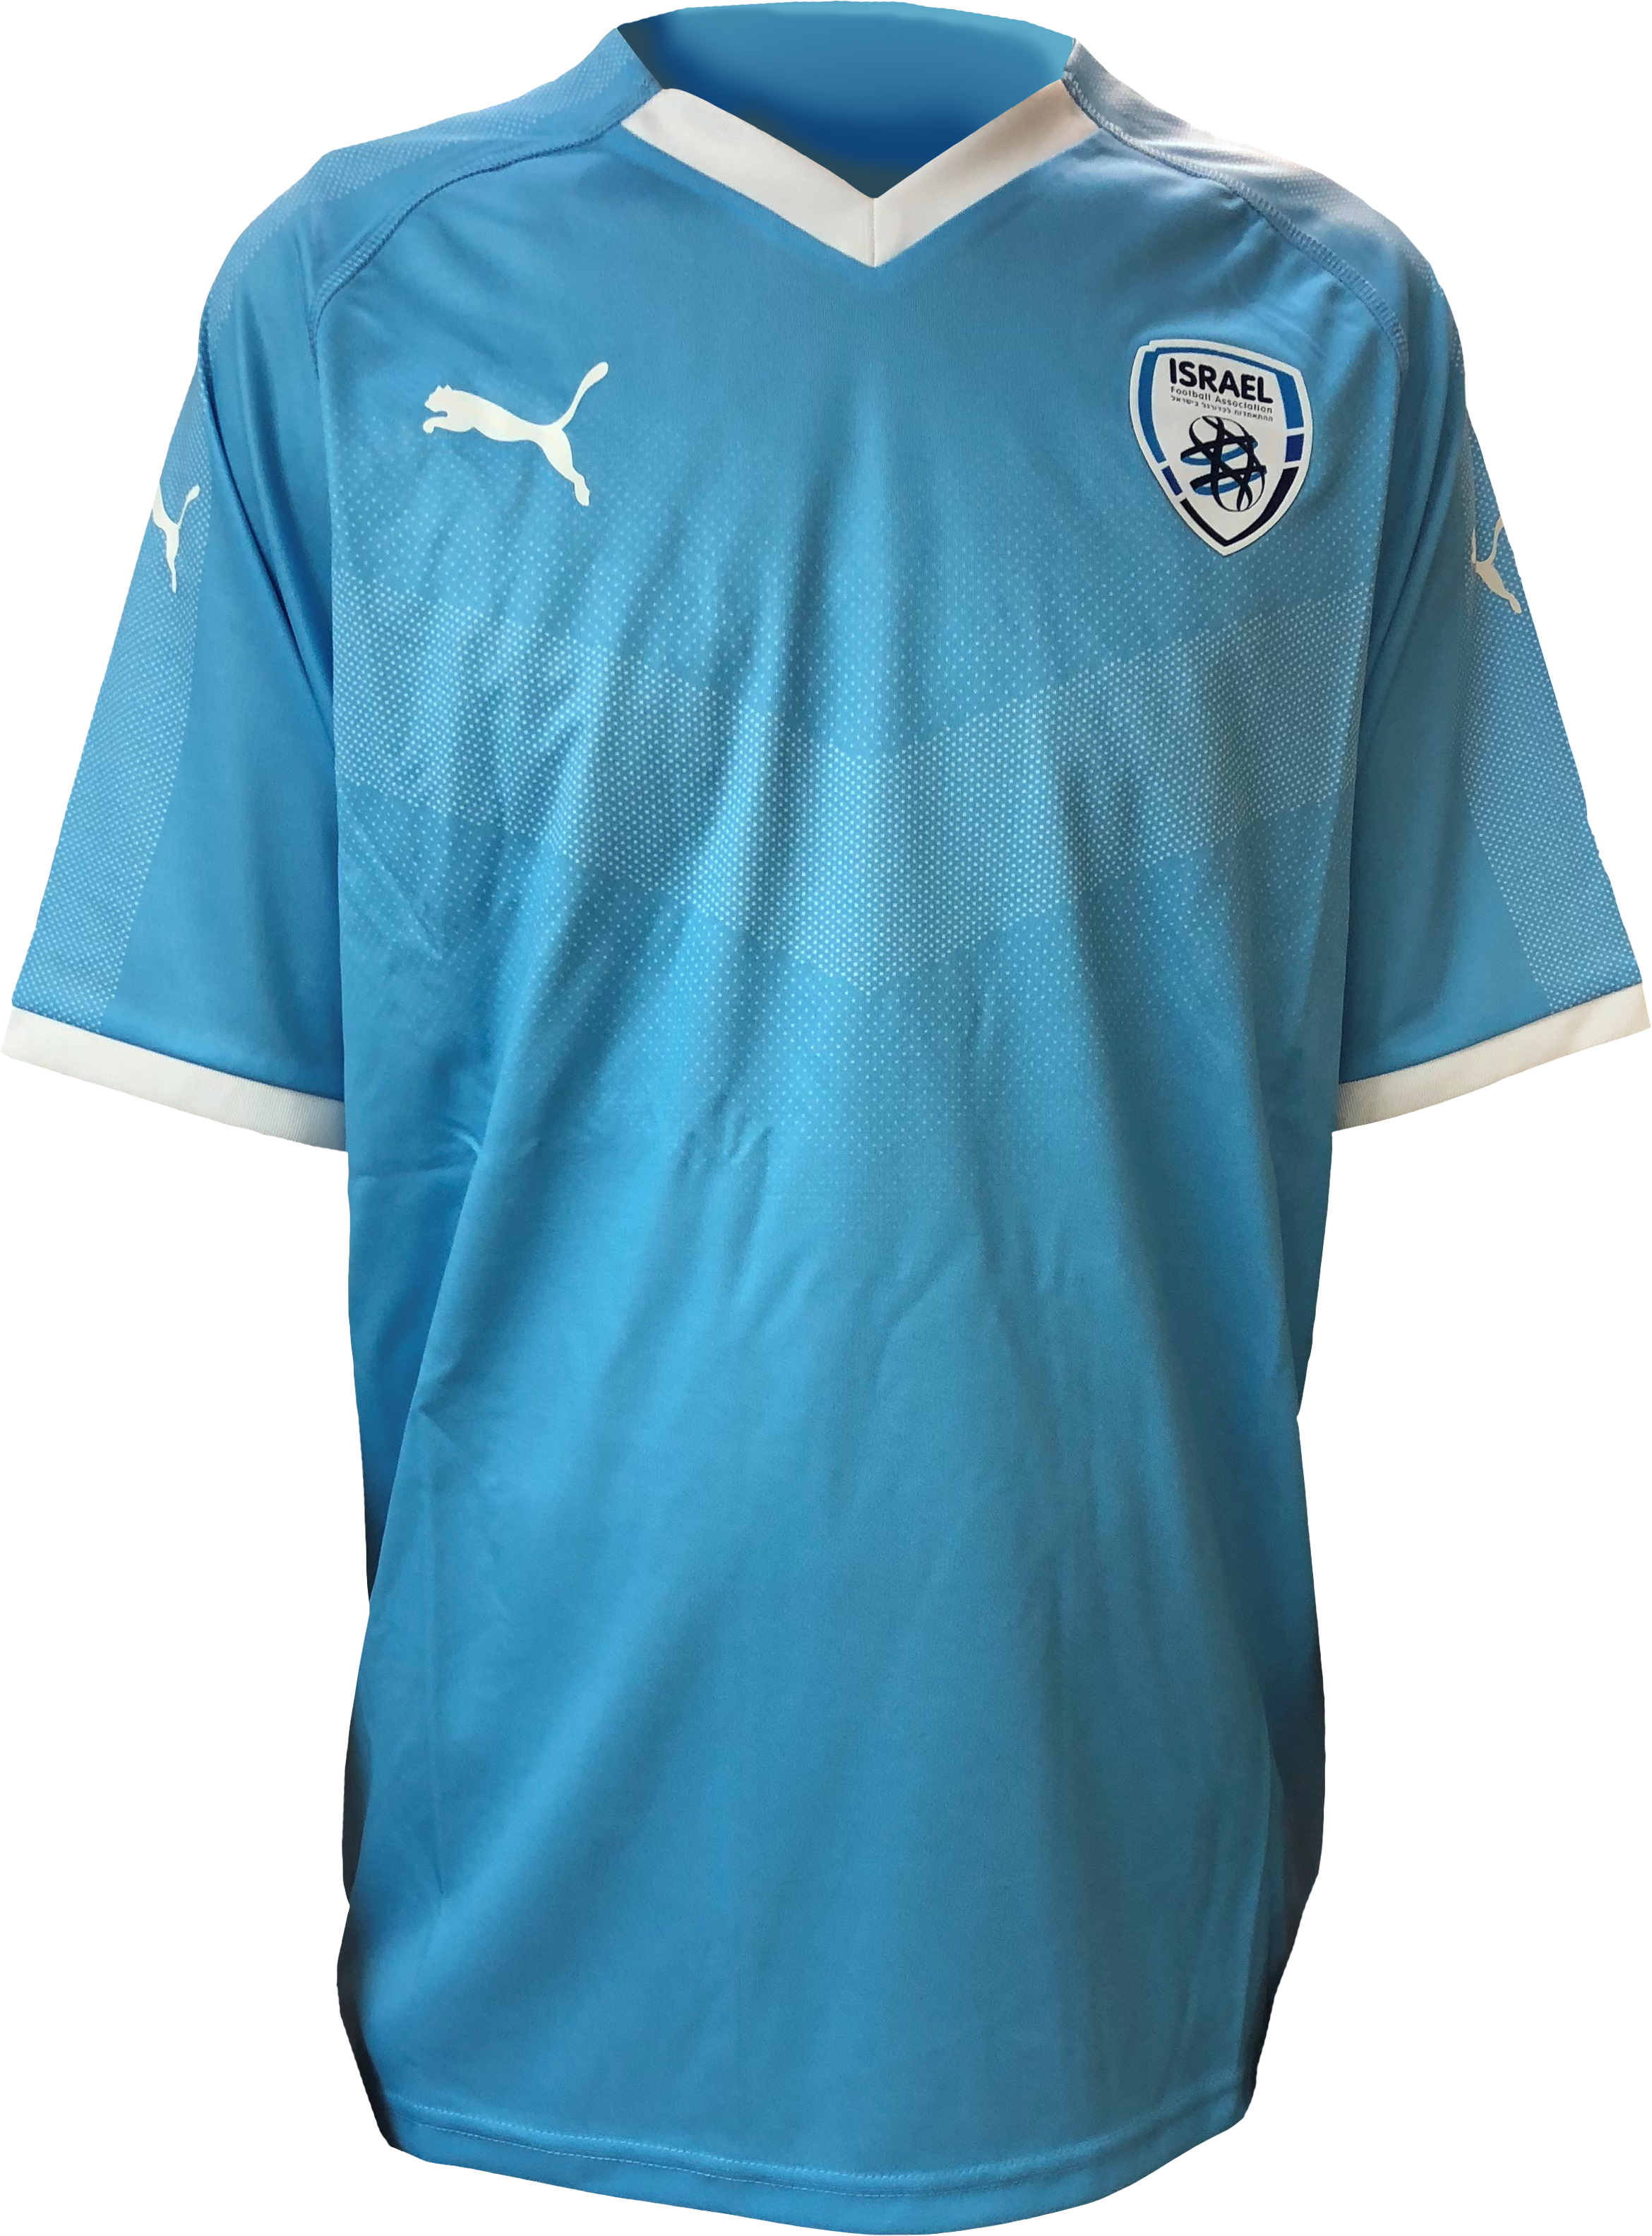 THE NEW 2019 ISRAEL SOCCER NATIONAL TEAM BLUE